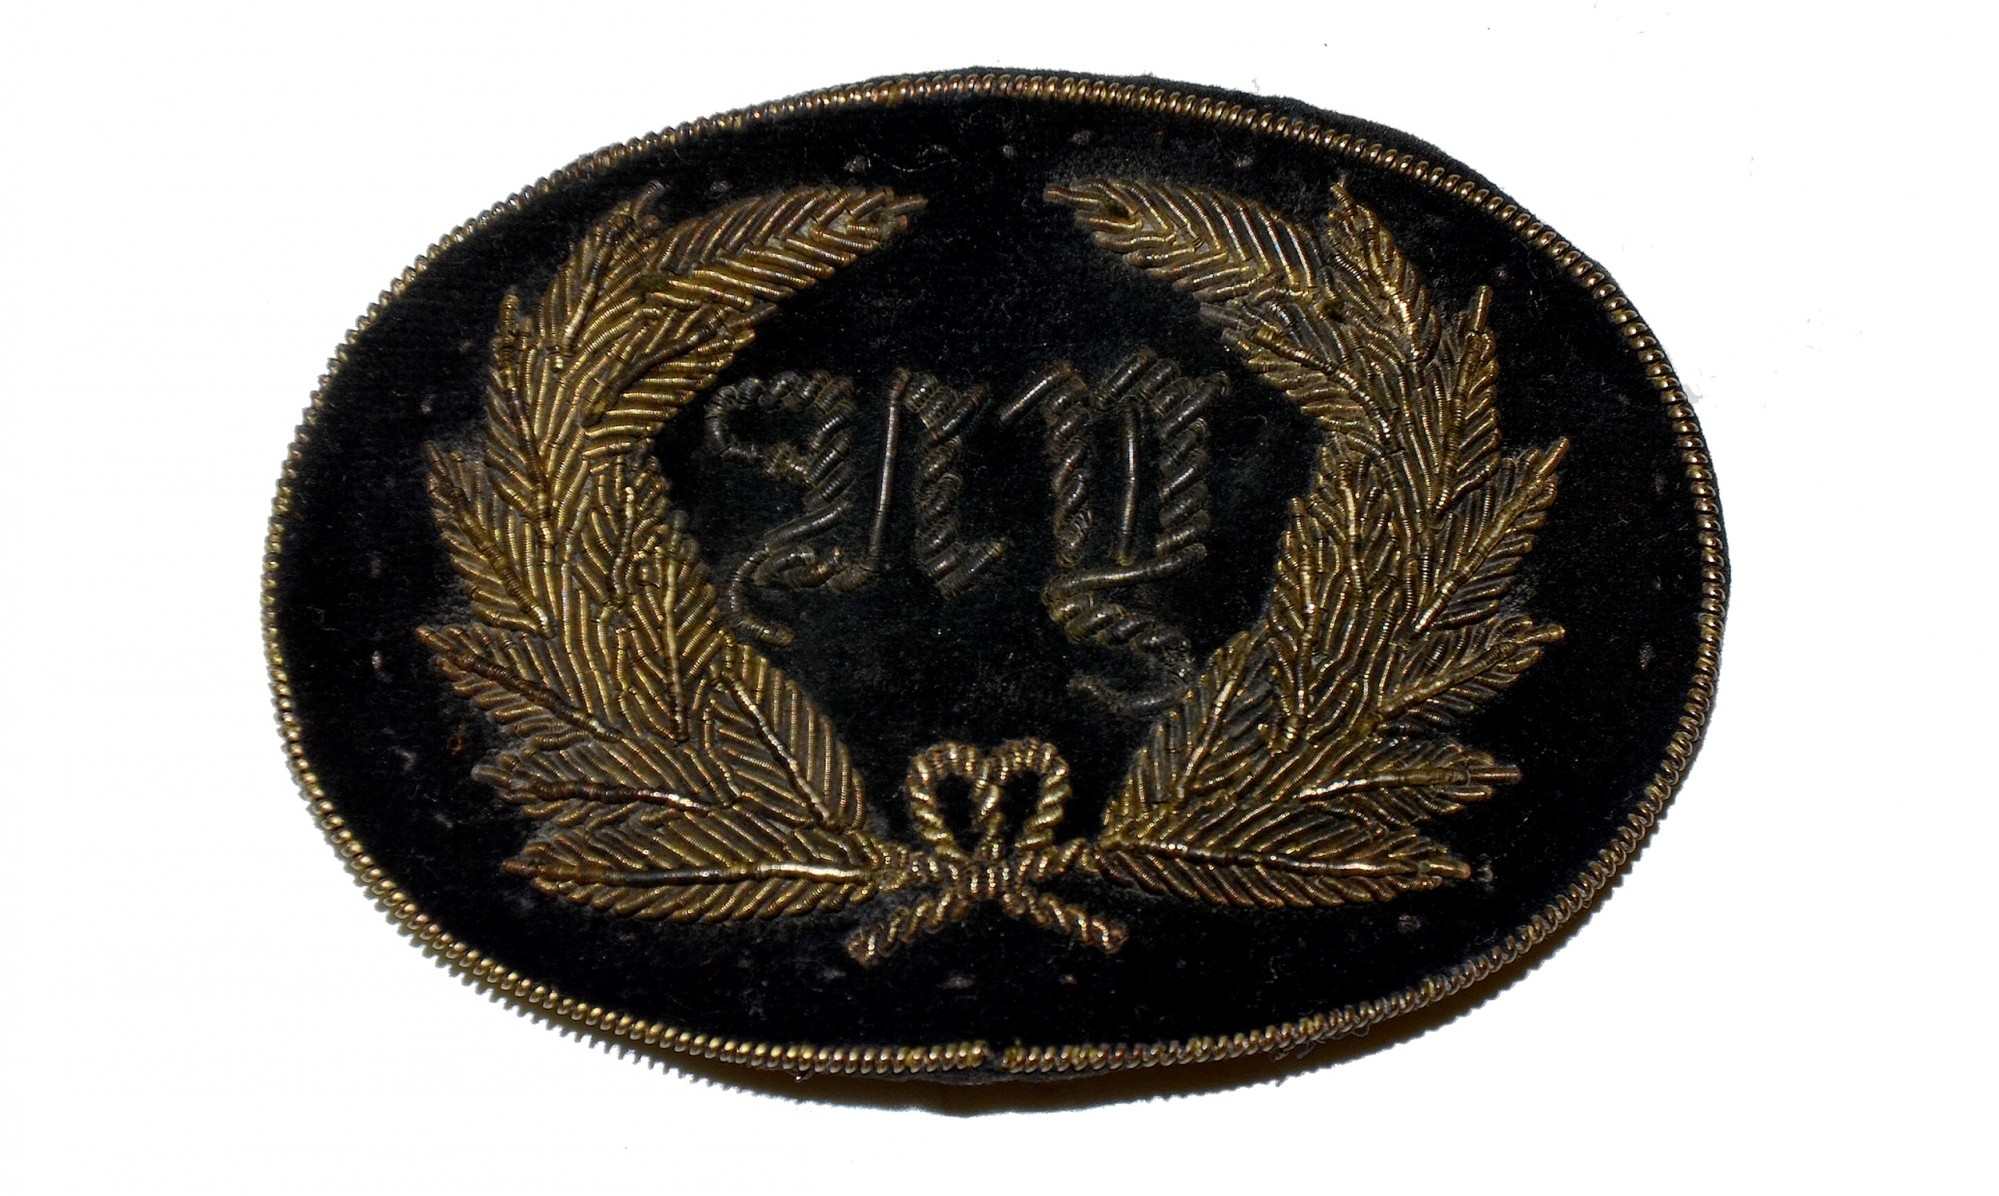 NEW YORK CIVIL WAR OFFICER'S HAT INSIGNIA